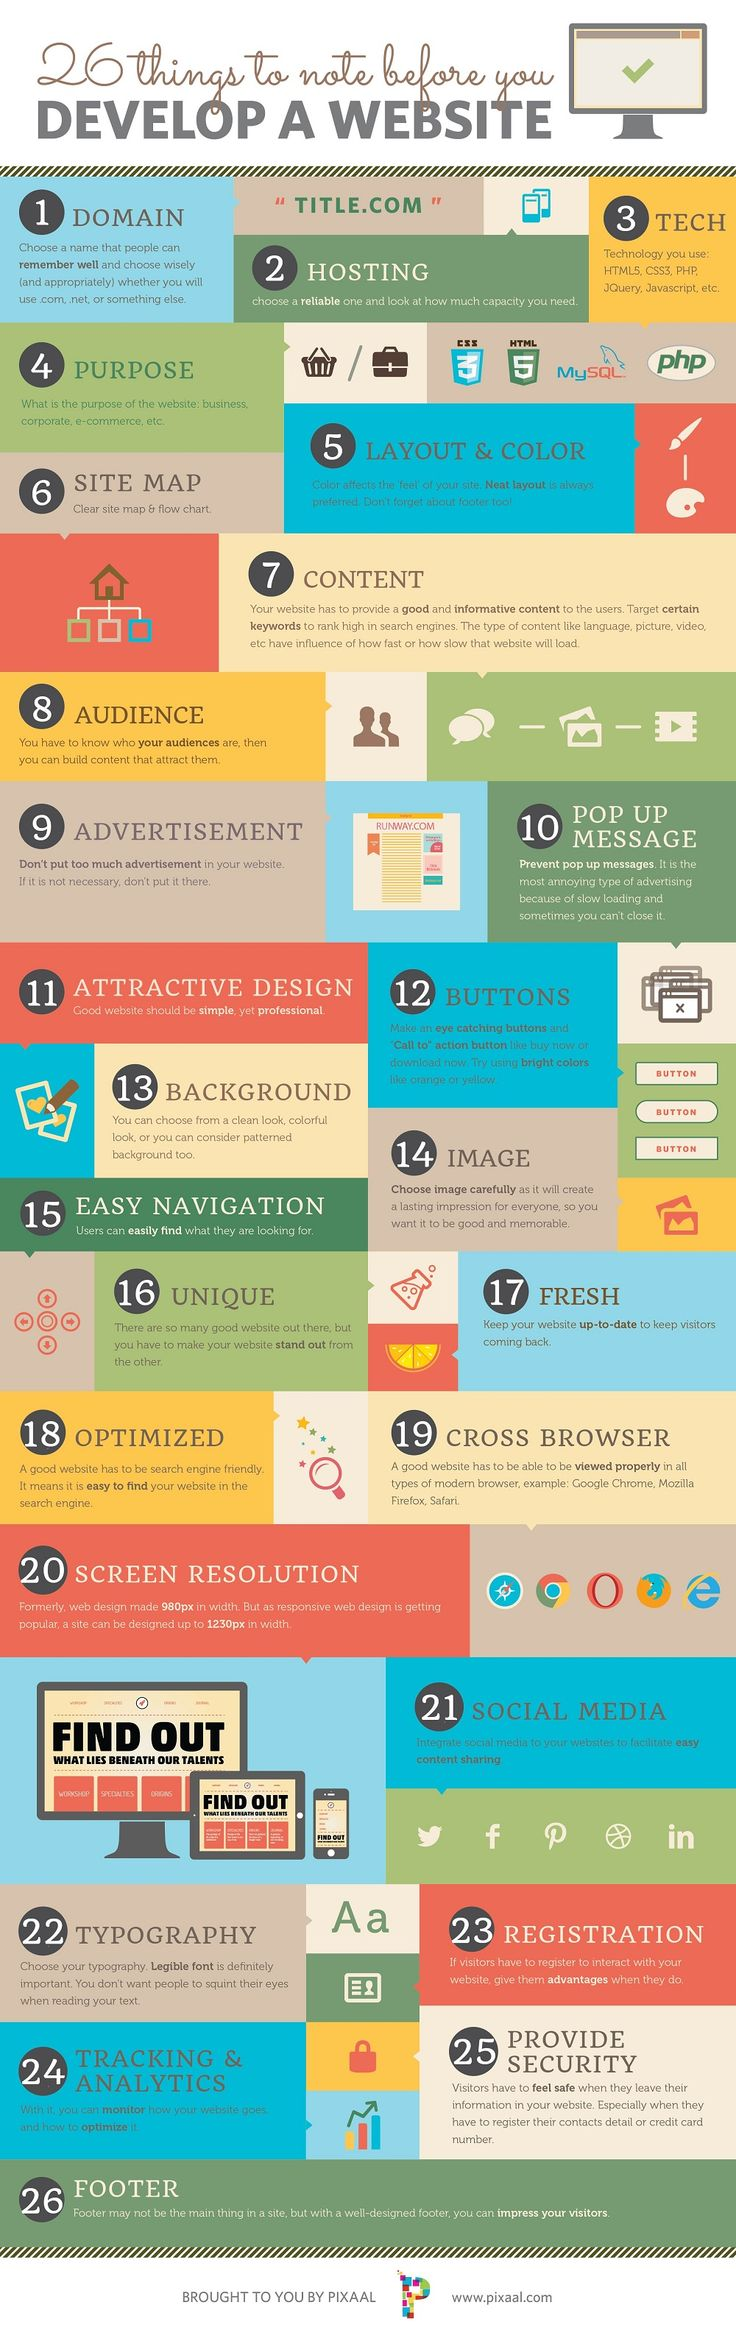 """""""26 Things to note before you develop a website"""". Website Development Infographic"""